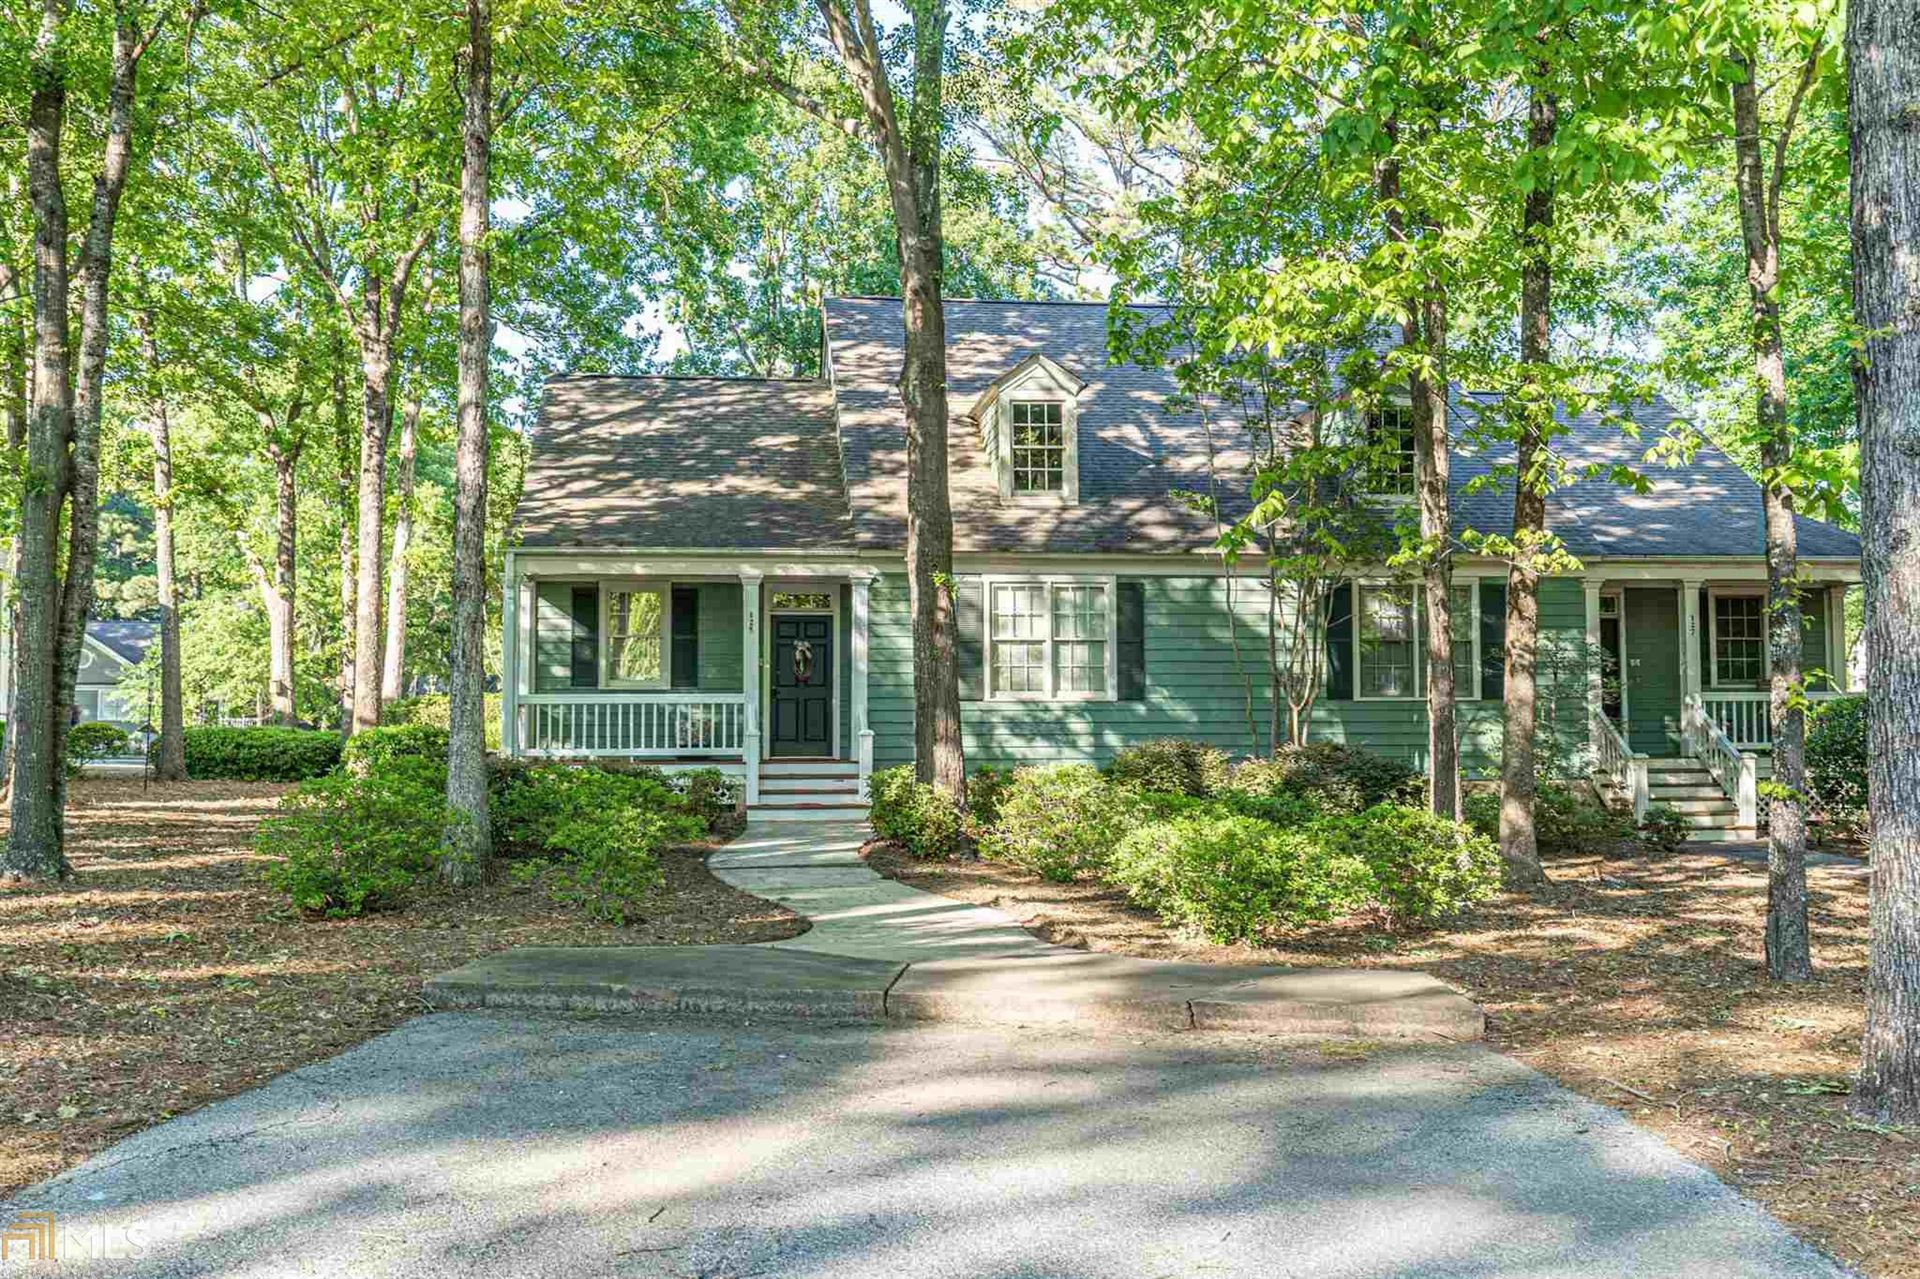 125 Woodcrest Dr, Eatonton, GA 31024 - MLS#: 8774073